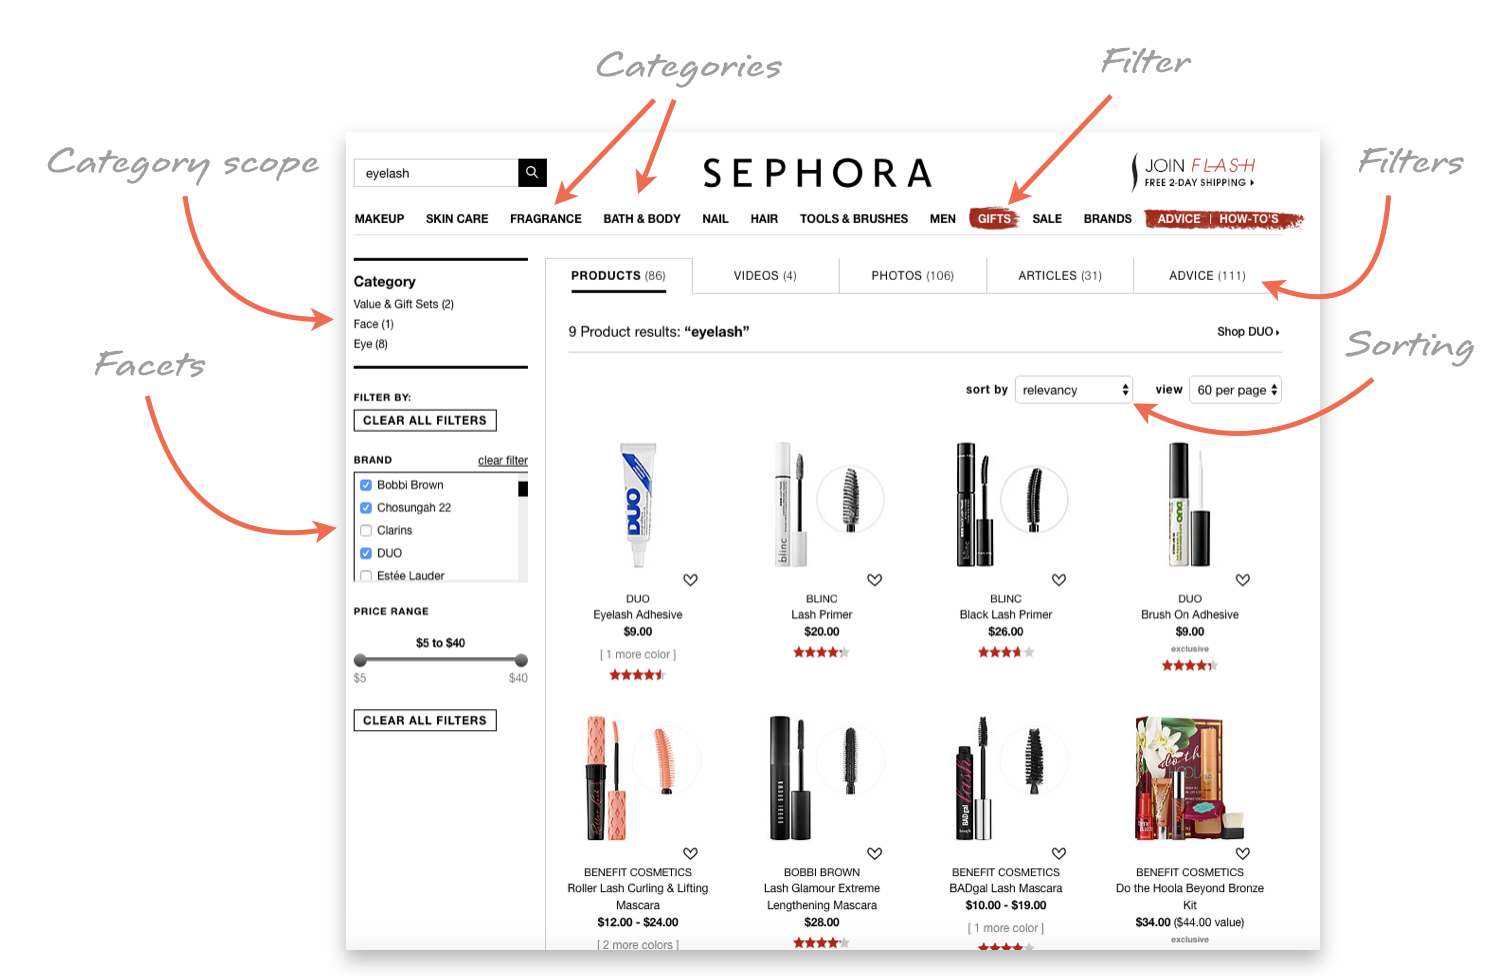 Sephora_Facets_Filters_Categories_Sorting